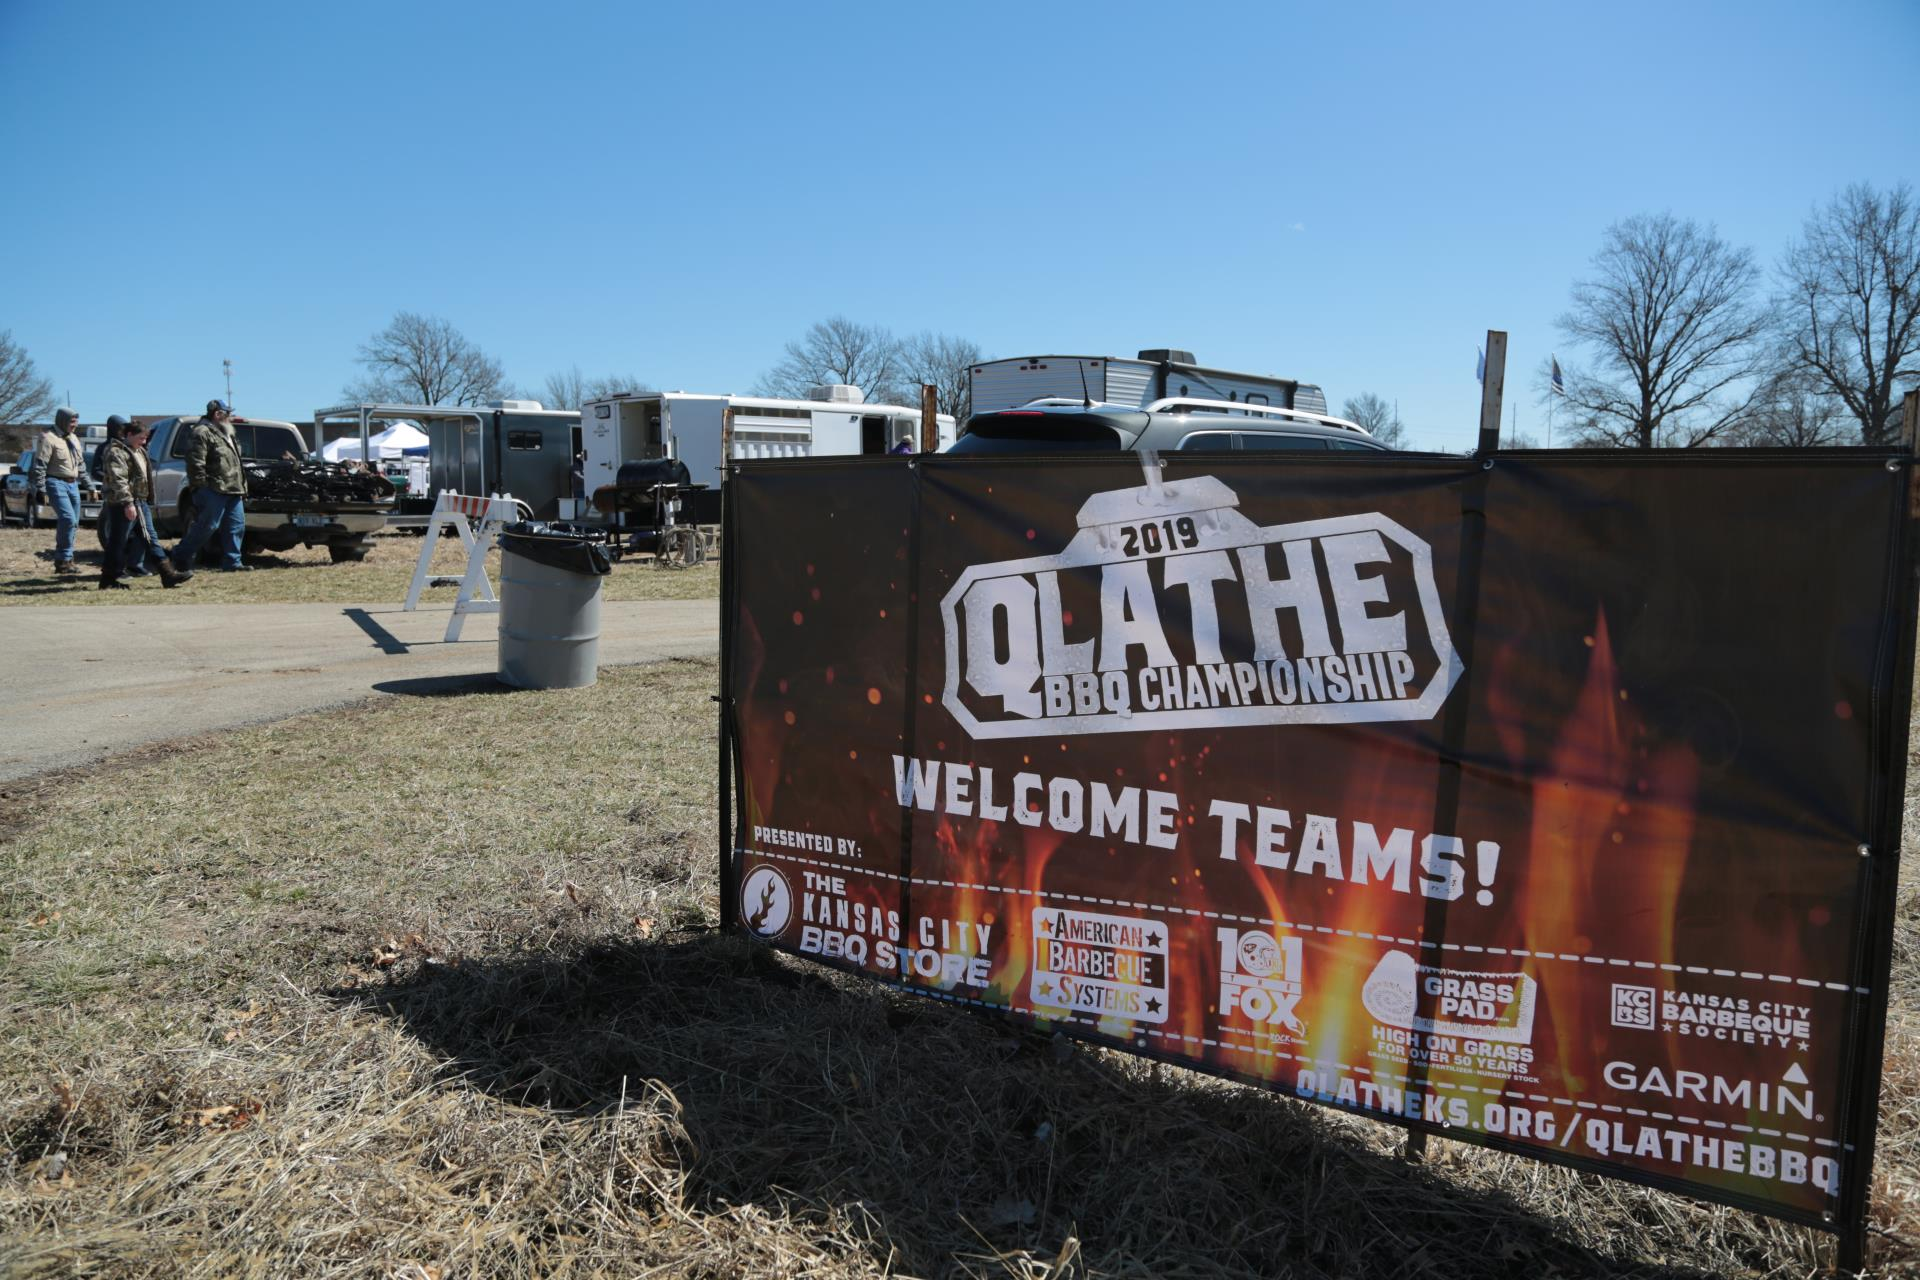 A sponsorship banner hanging at the entrance to the annual Qlathe Barbecue Competition